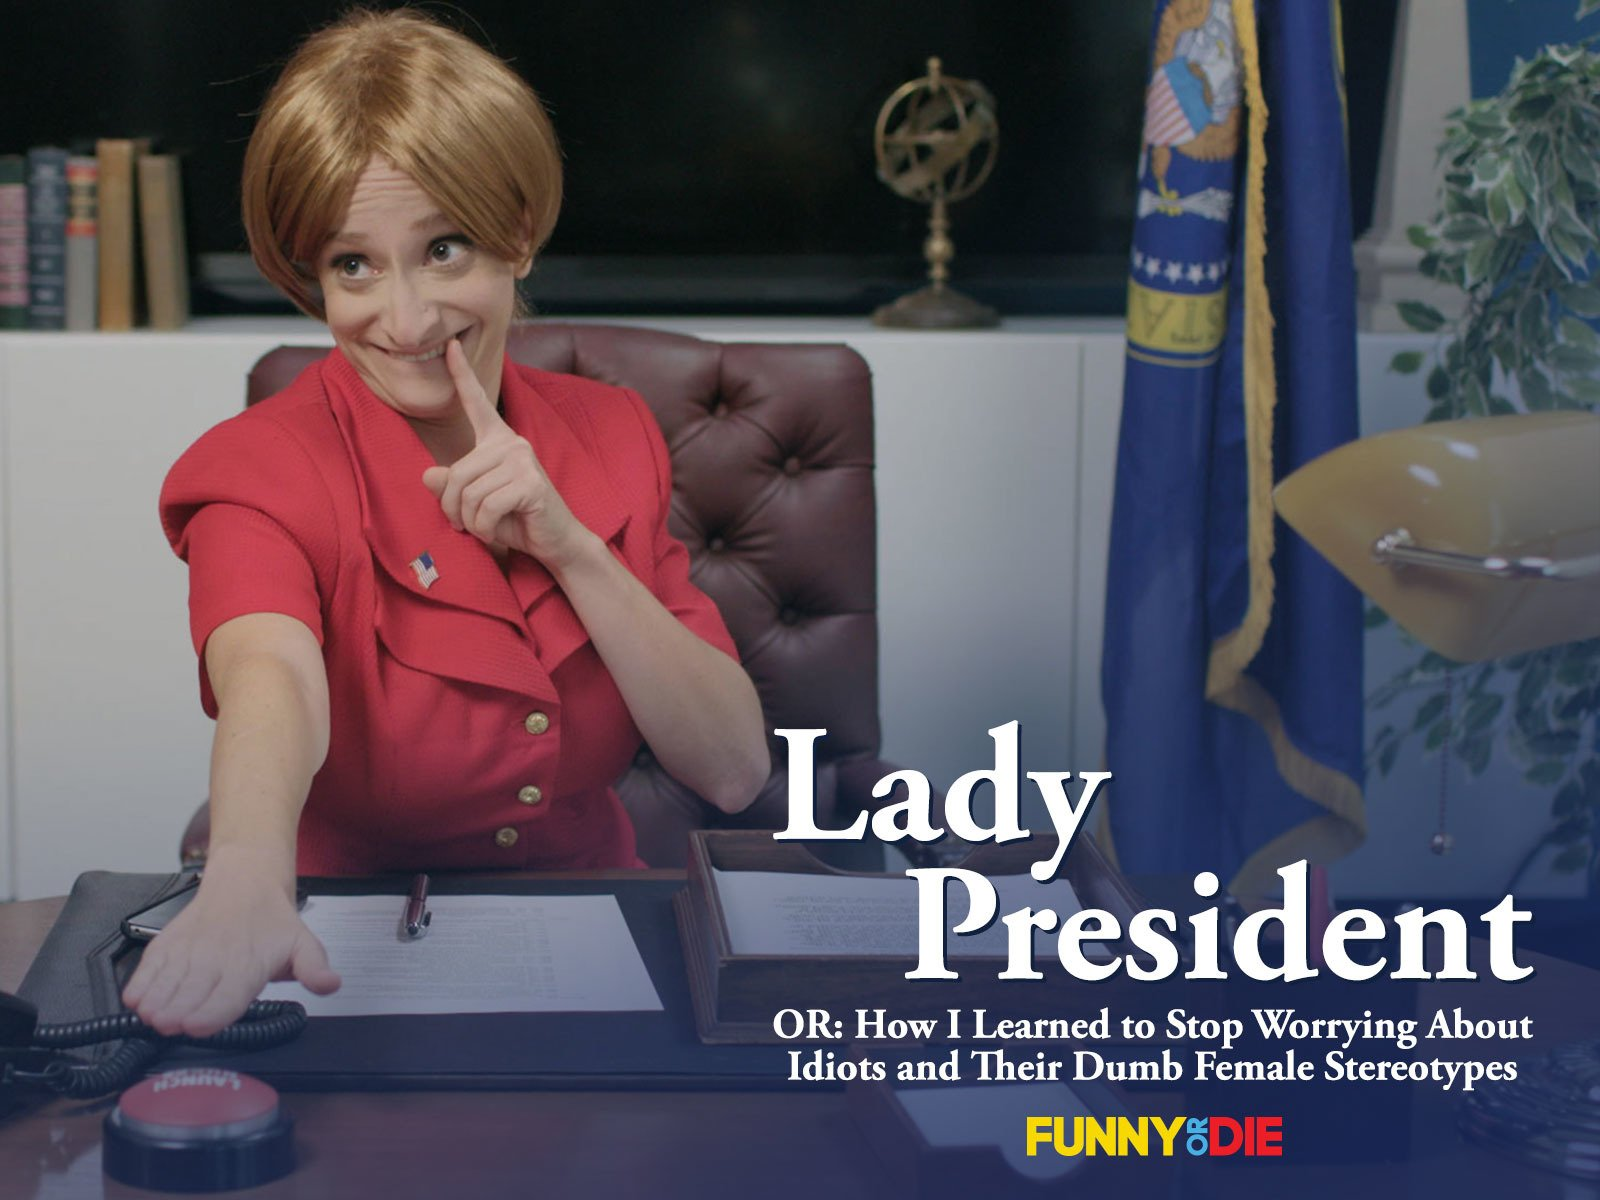 Lady President (OR: How I Learned to Stop Worrying About Idiots and Their Dumb Female Stereotypes) - Season 1